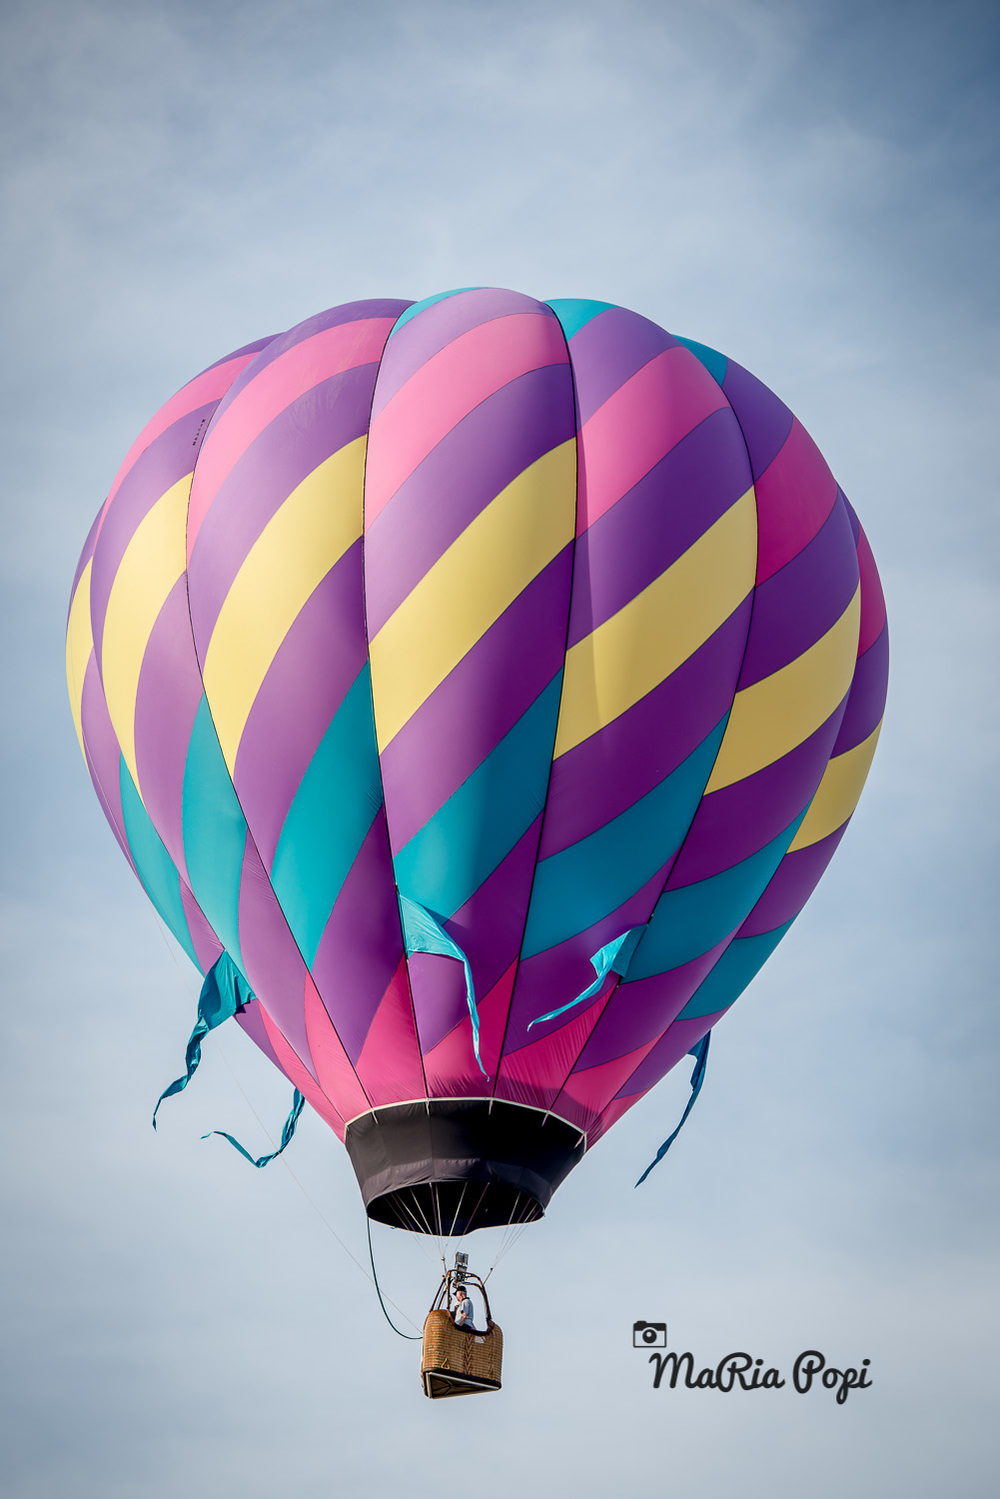 Balloon takes to the sky during Michigan Challenge Balloon Fest 2014, Howell,Mi.